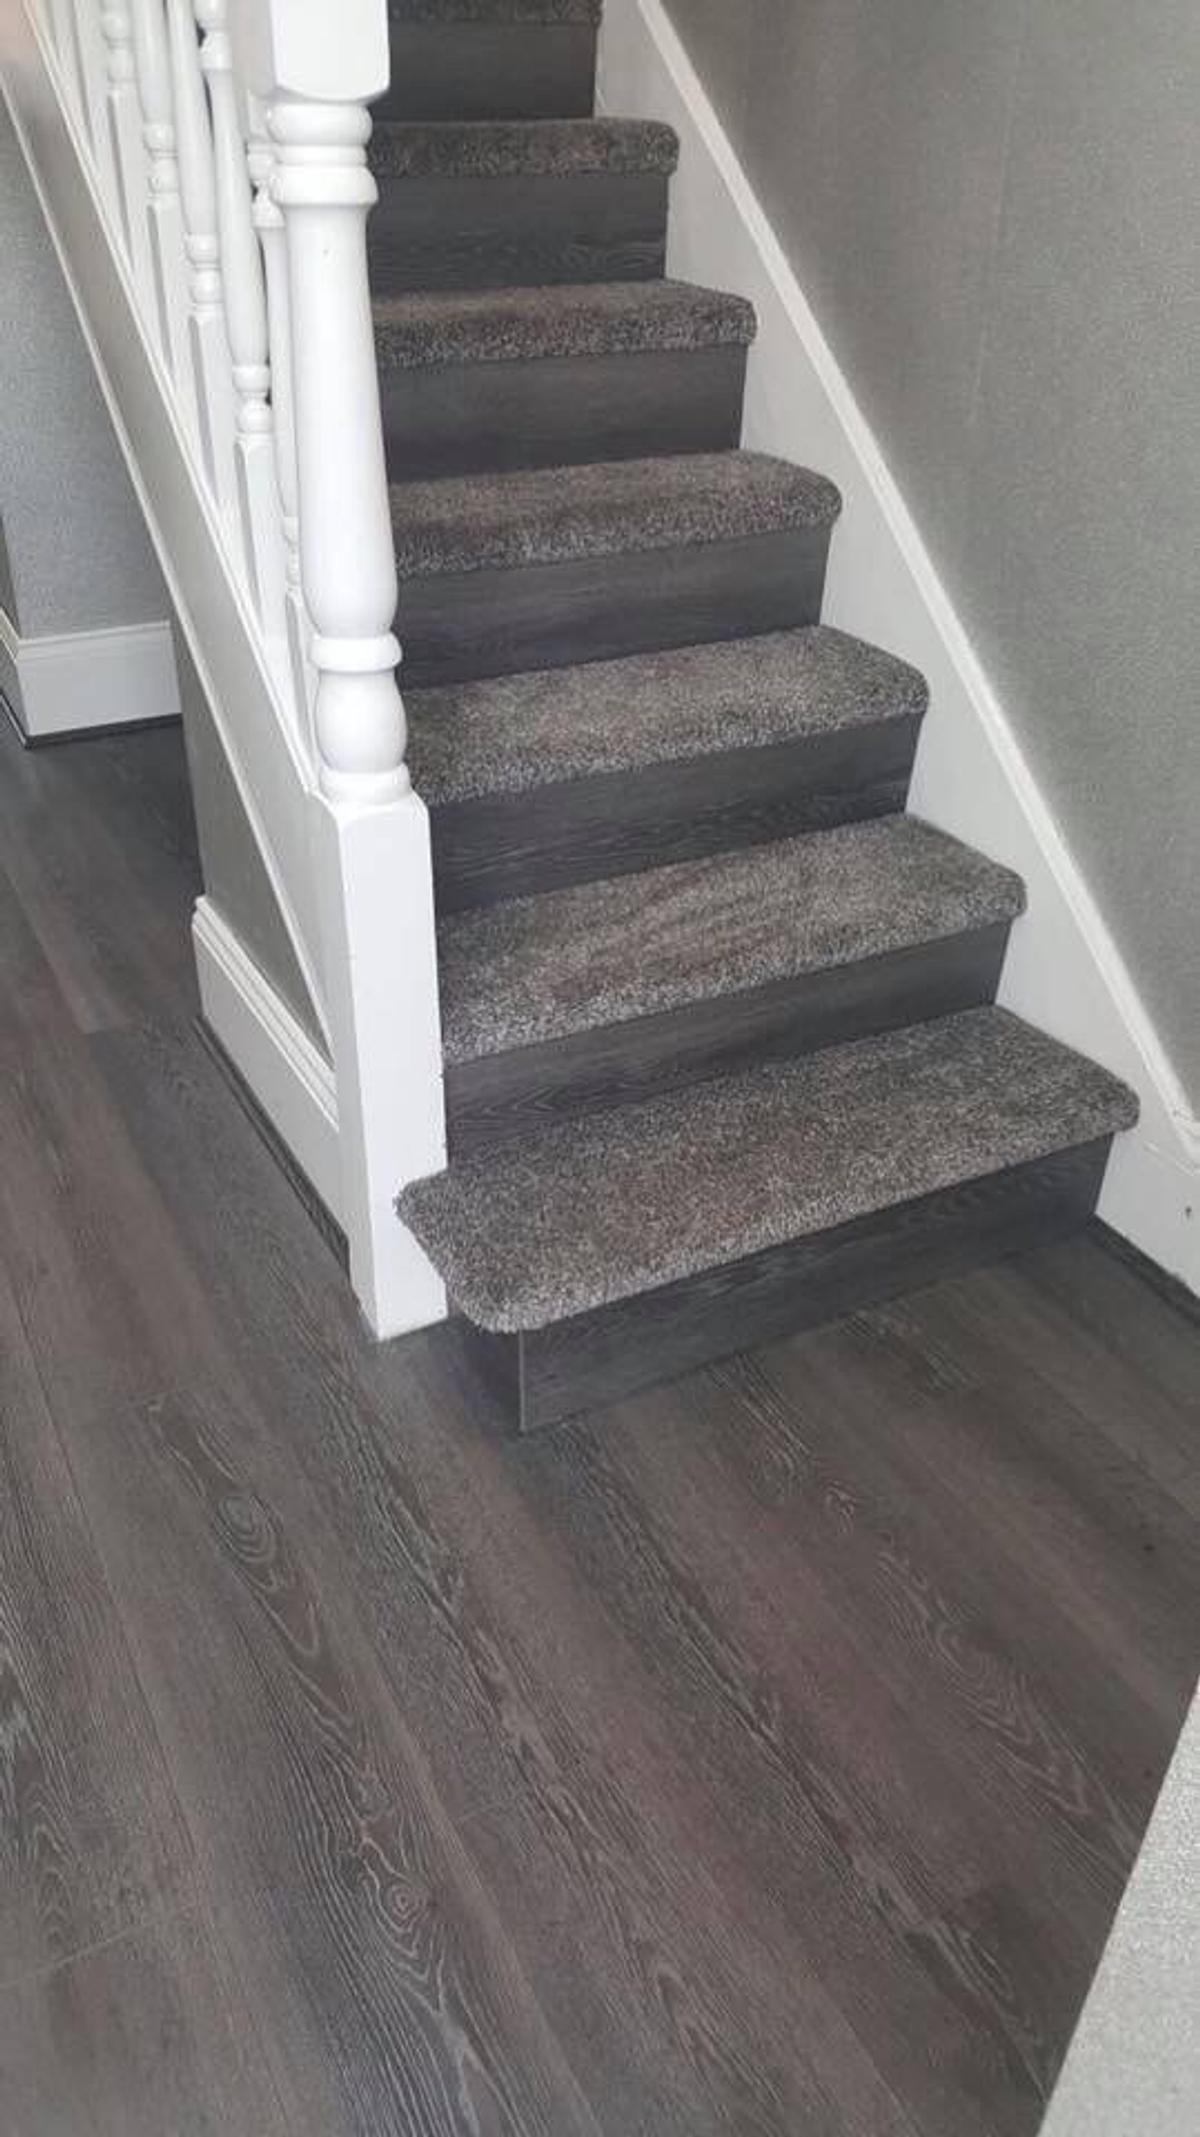 Easipay Carpets Ltd In Humberston For £10 00 For Sale Shpock   Carpet On Stairs Only   Concept   Line Carpet Staircase Double   Pinstripe Grey   Grey   Wood